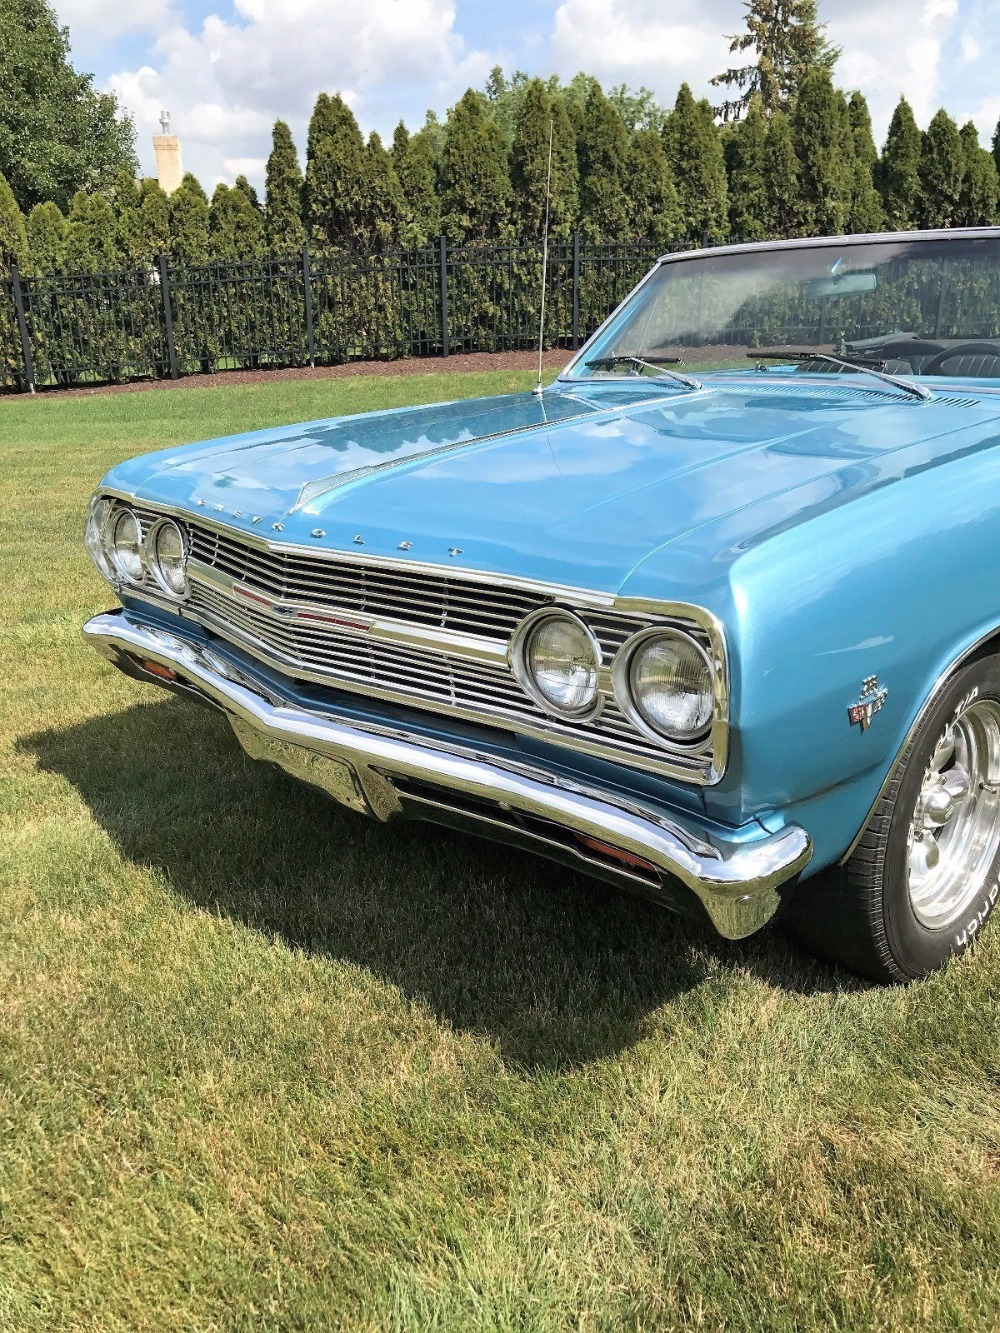 Used 1965 Chevrolet Chevelle Malibu-Summer Fun-Great color combination- Very Reliable- | Mundelein, IL